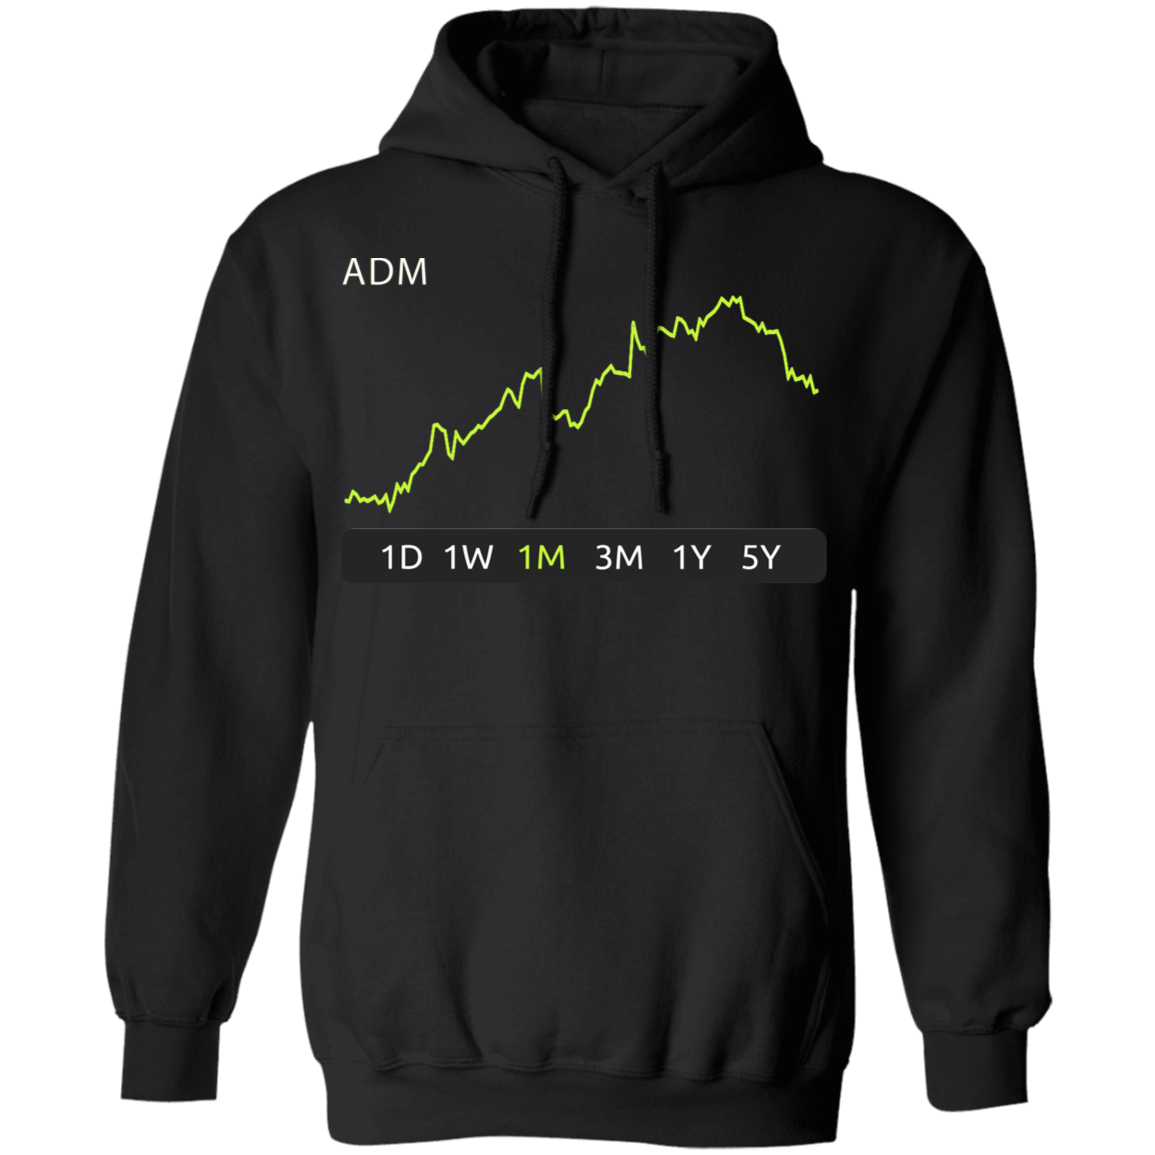 ADM Stock 1m Pullover Hoodie